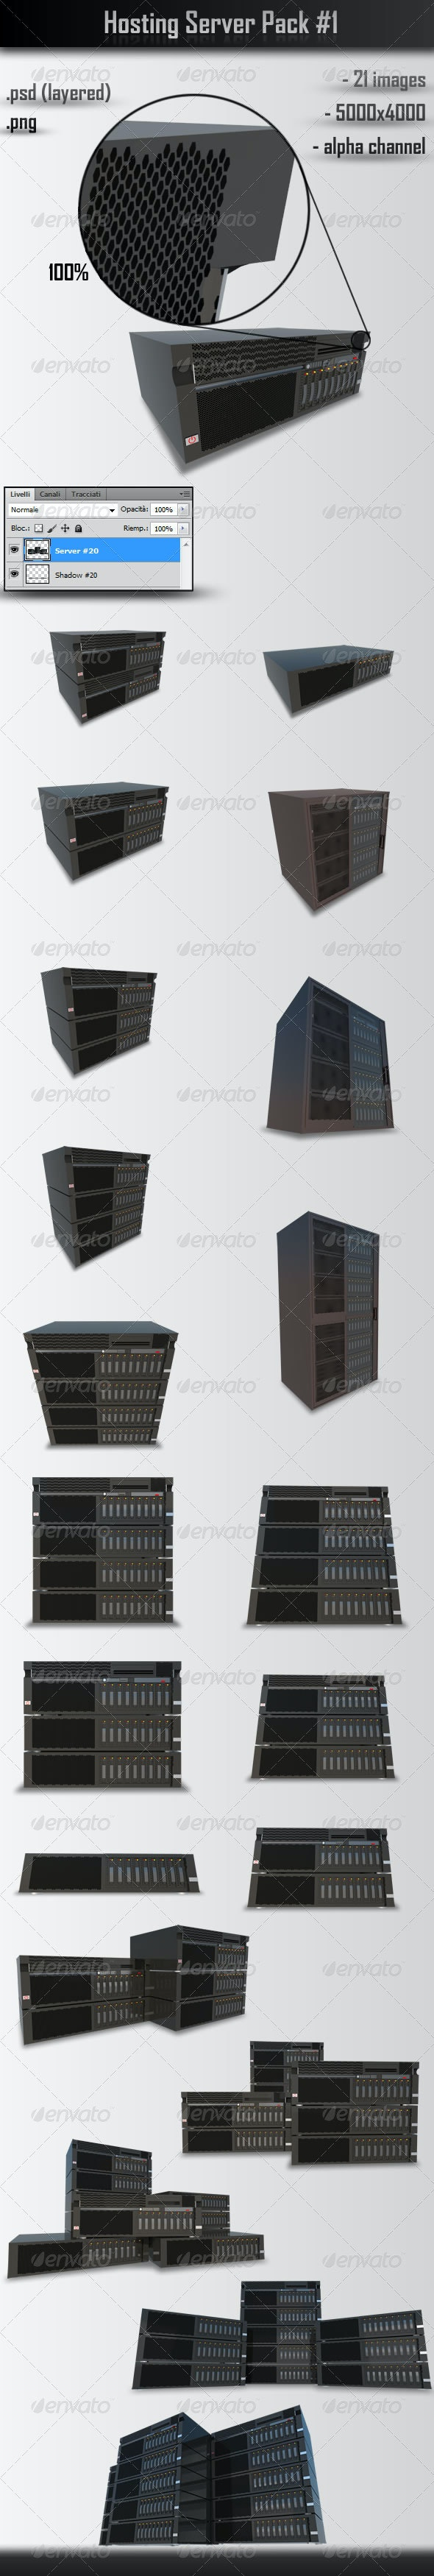 Hosting Server Pack #1 - Technology 3D Renders